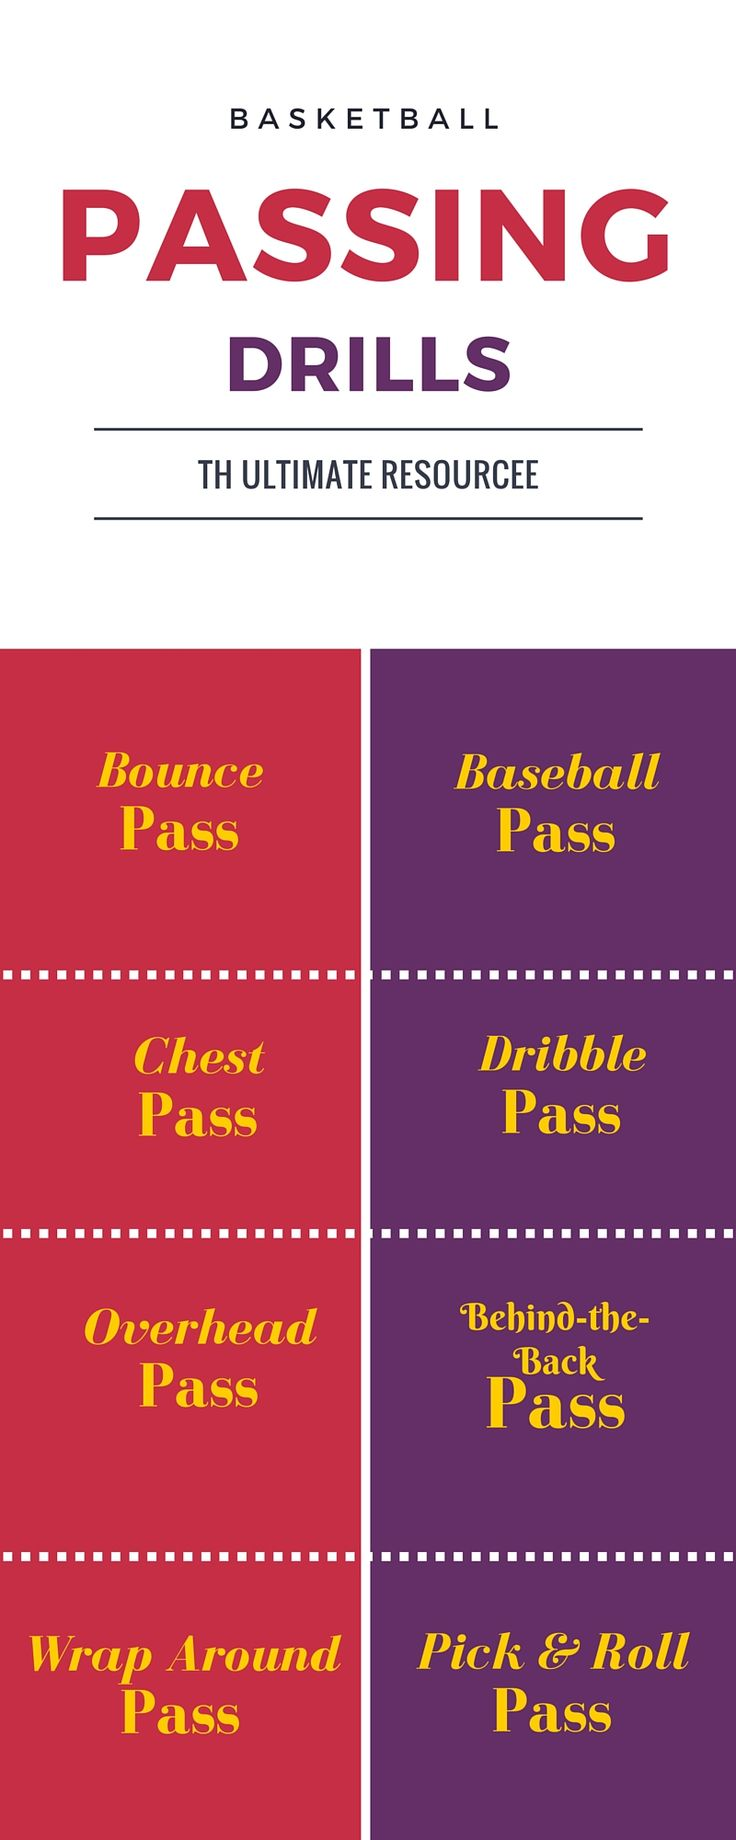 Basketball Passing Drills Resource